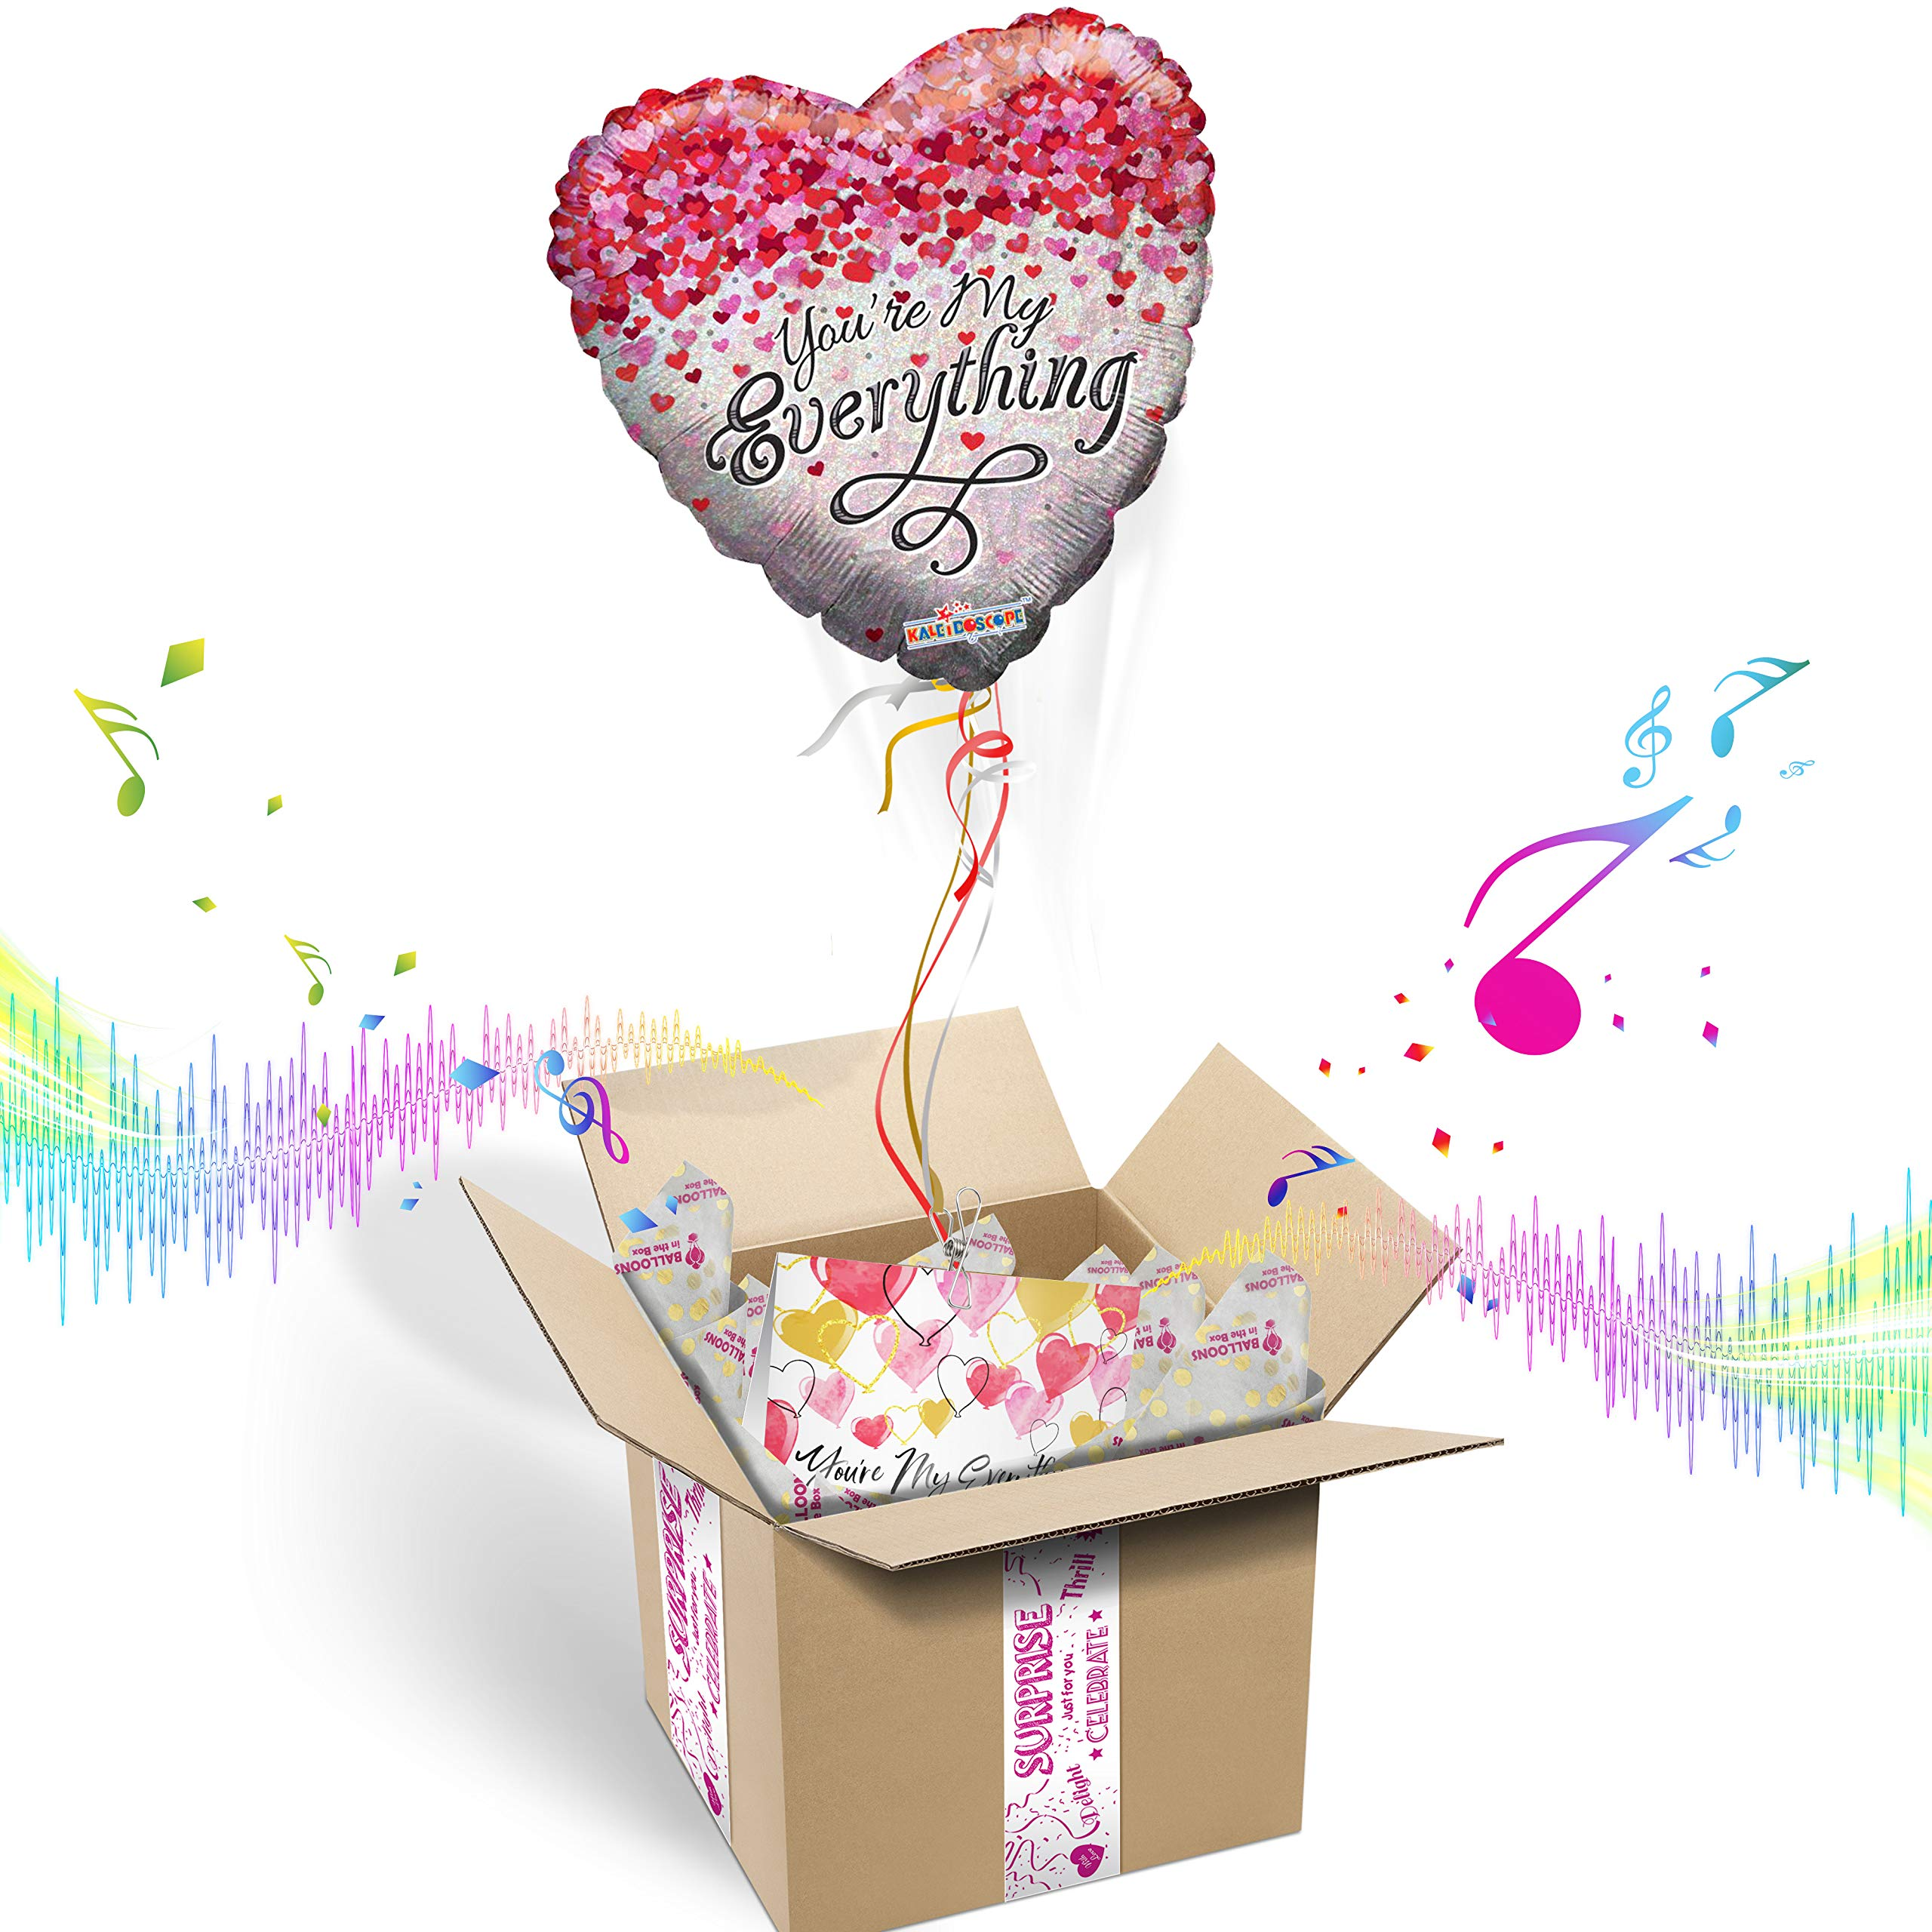 ''YOU'RE MY EVERYTHING'' HEART SHAPED INFLATED HELIUM BALLOON LOVE GIFT PACKAGE | Includes Coordinating Customizable Greeting Card | Floats out of the Box and Plays a Happy Jingle When Opened